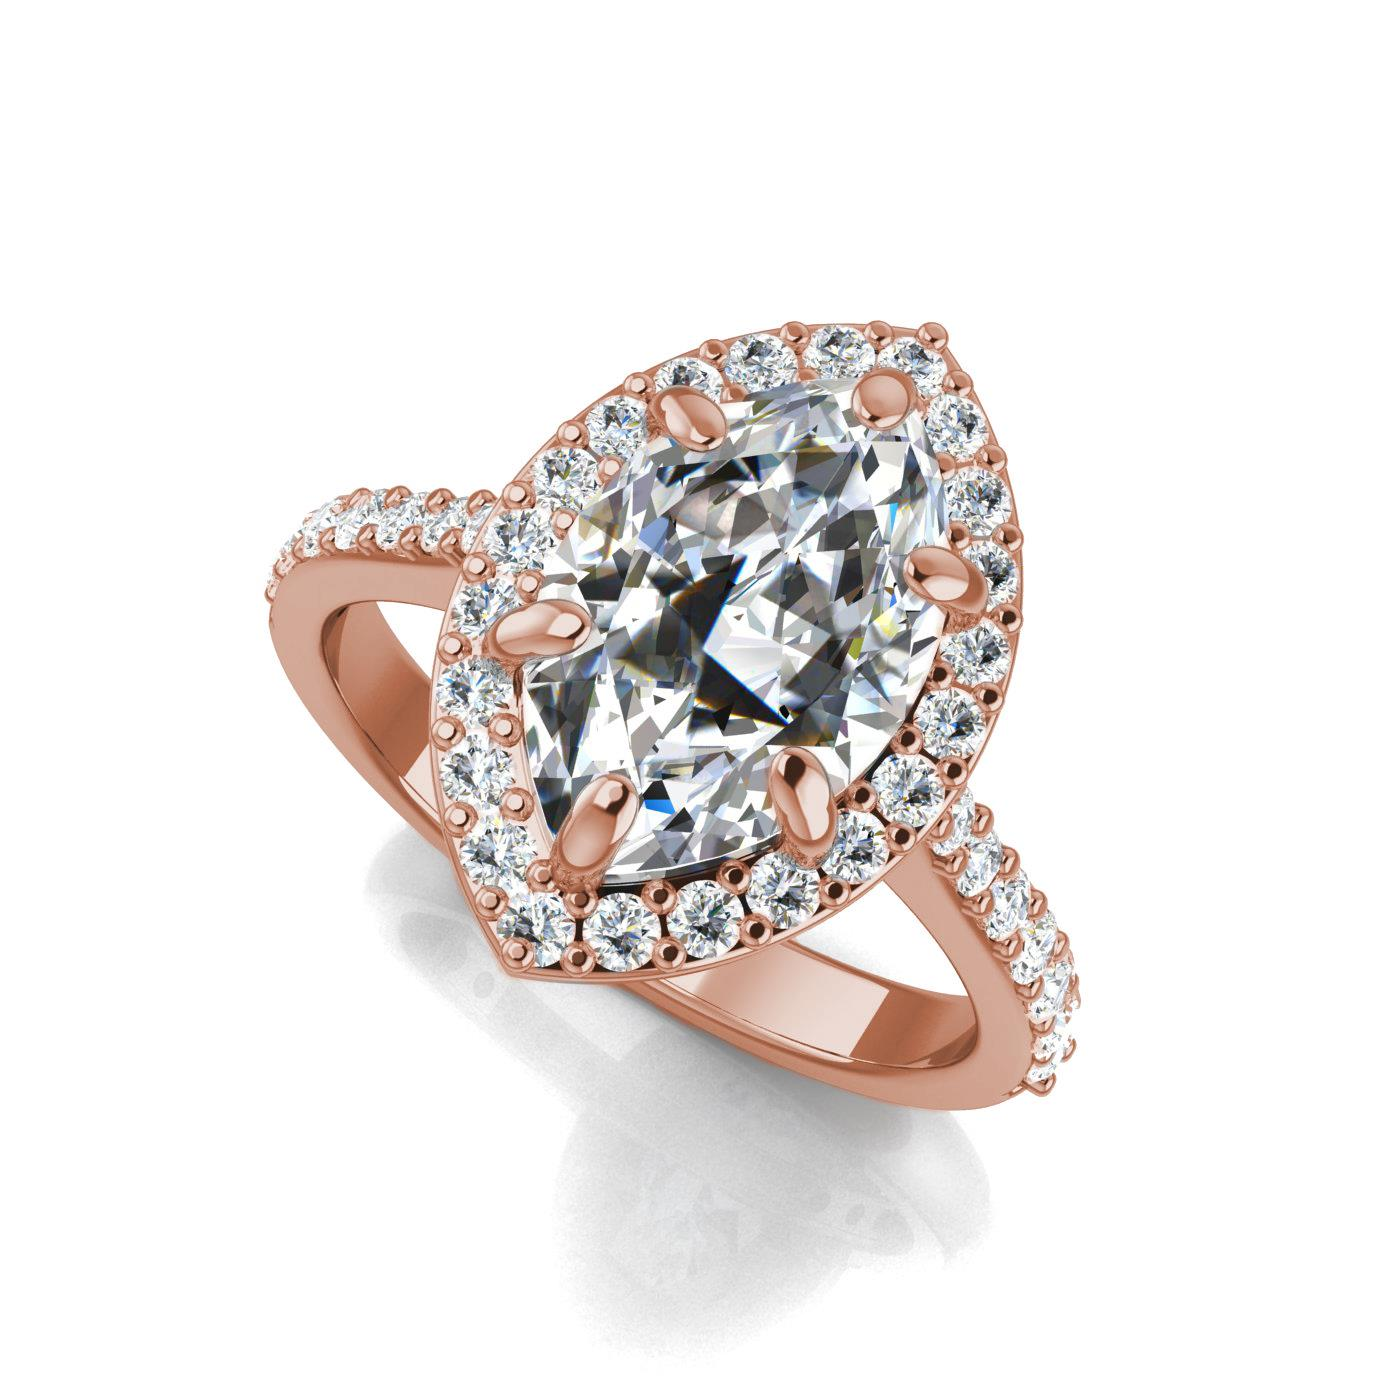 rings kwon equilibrium diamond rc ring designs cut jennie marquise products